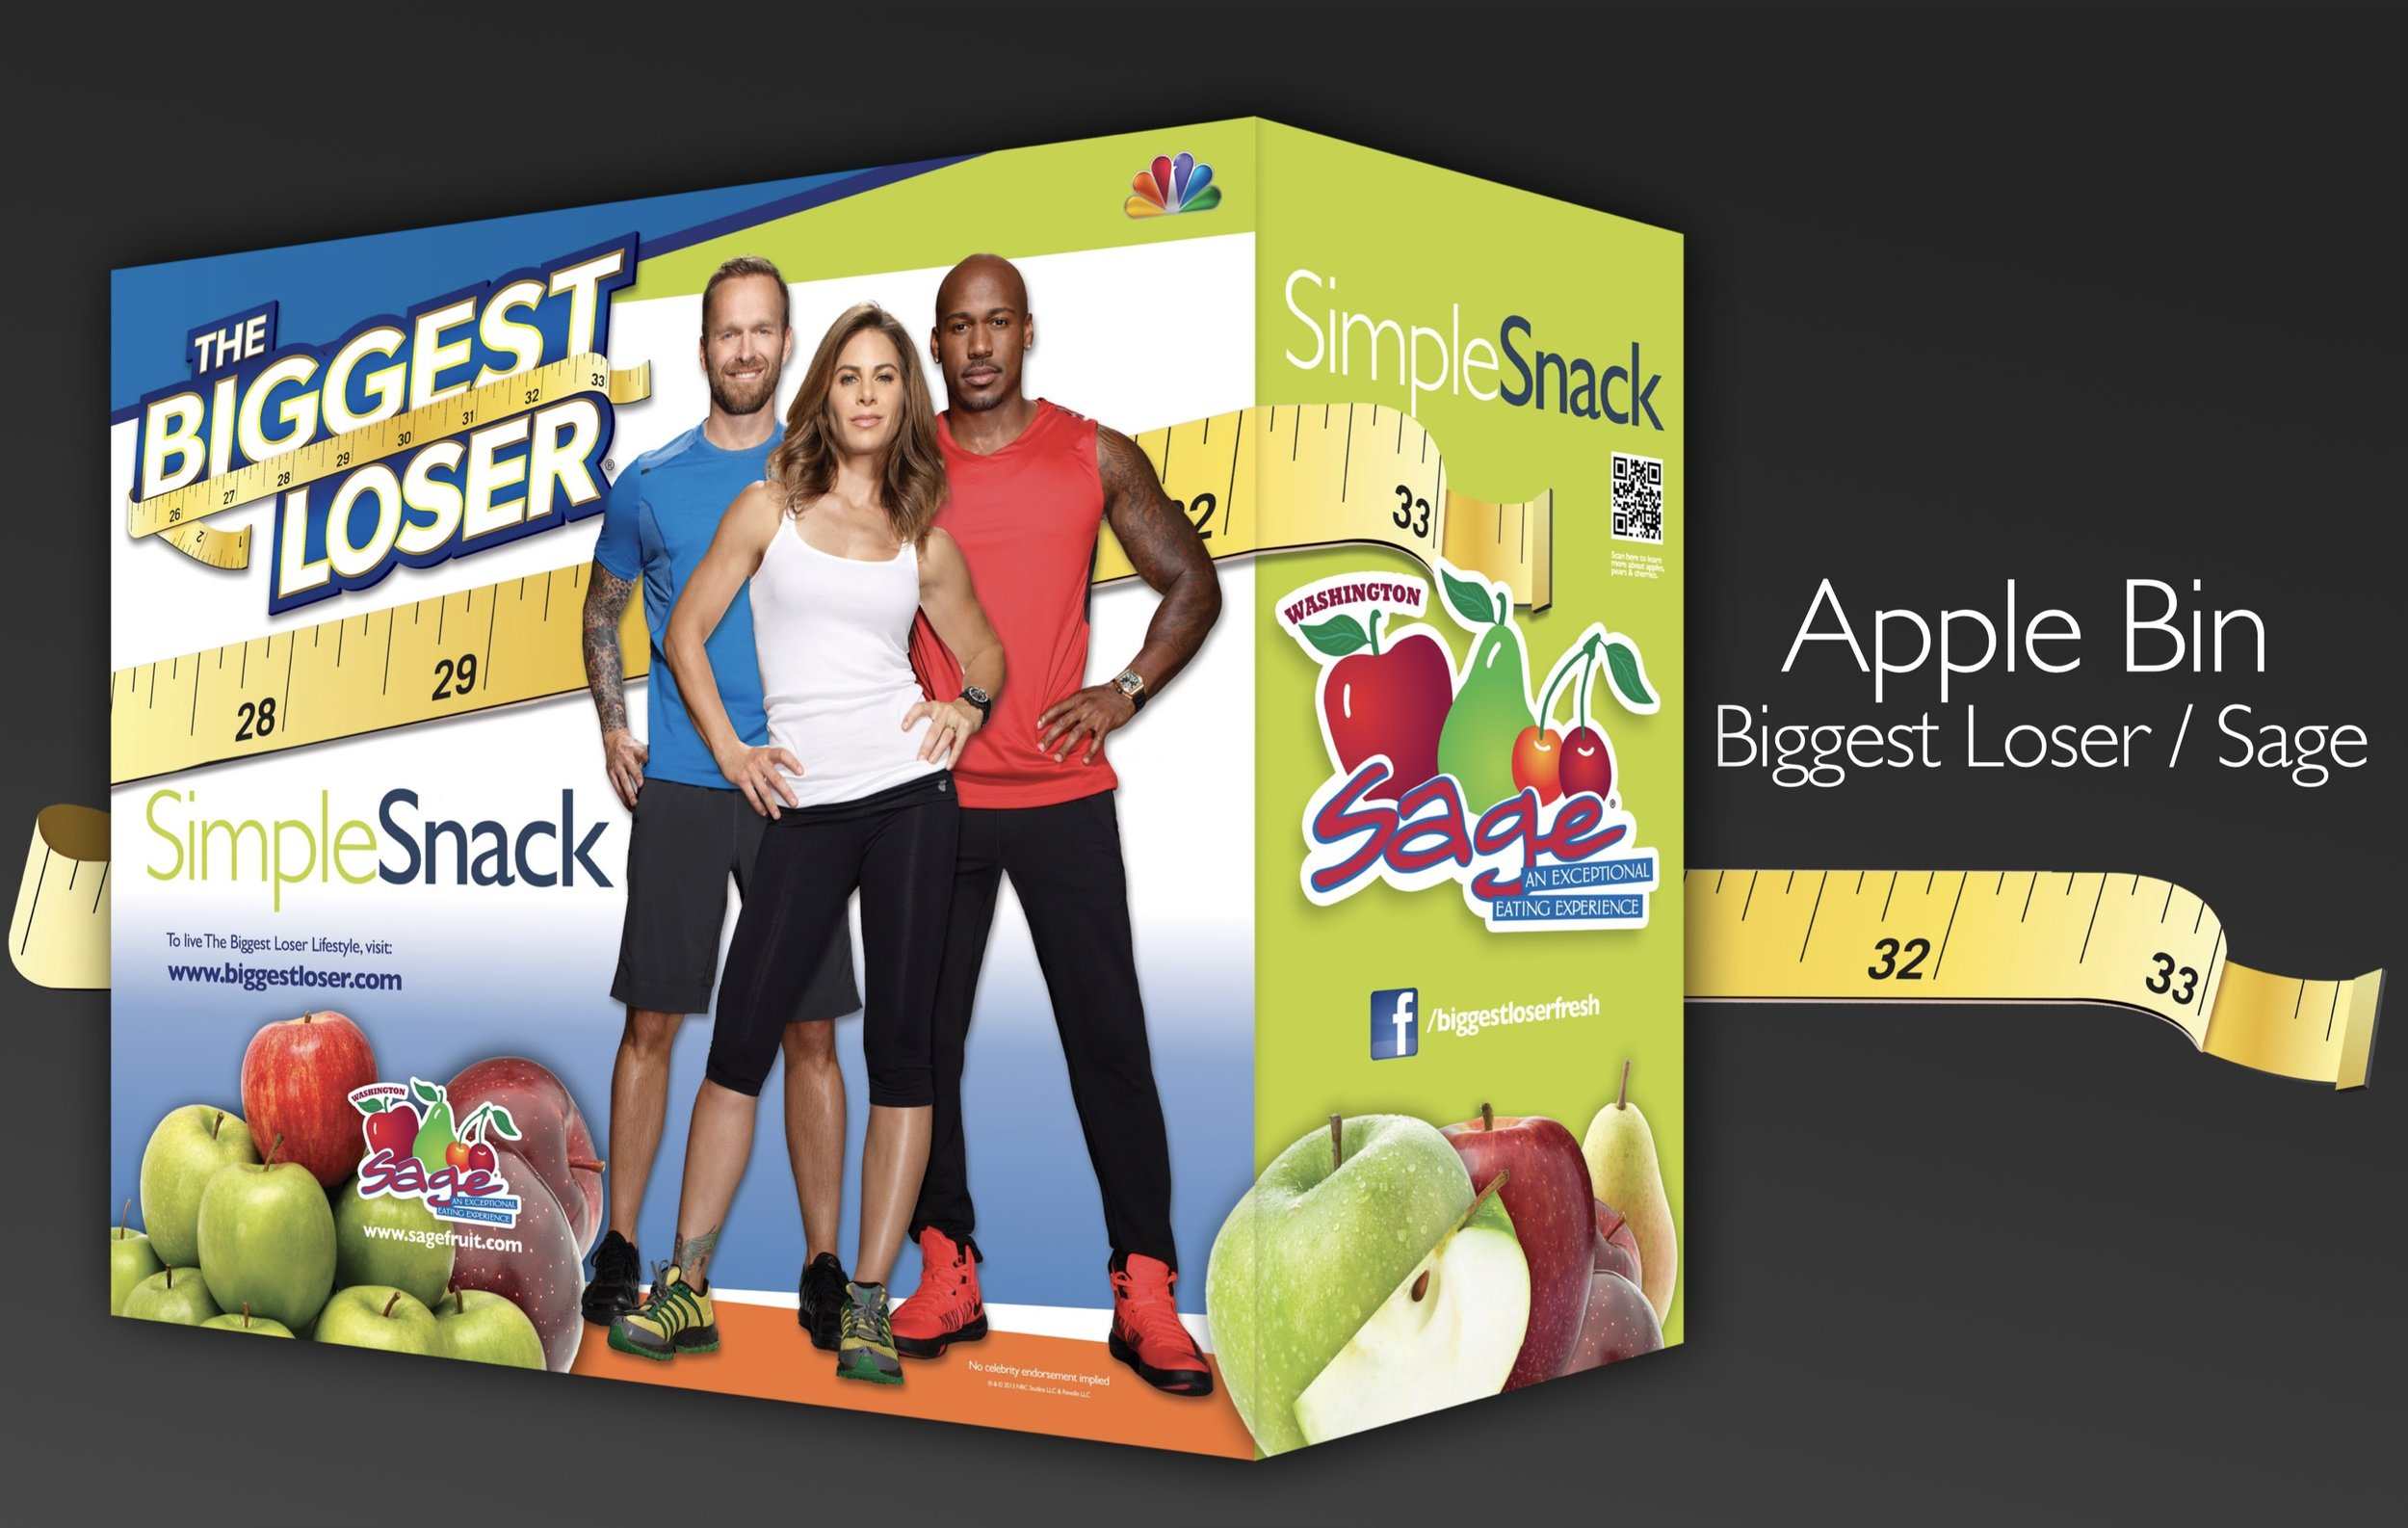 Apple point of sale display designed for Sage Fruit Company in collaboration NBC's Biggest Loser Television show.